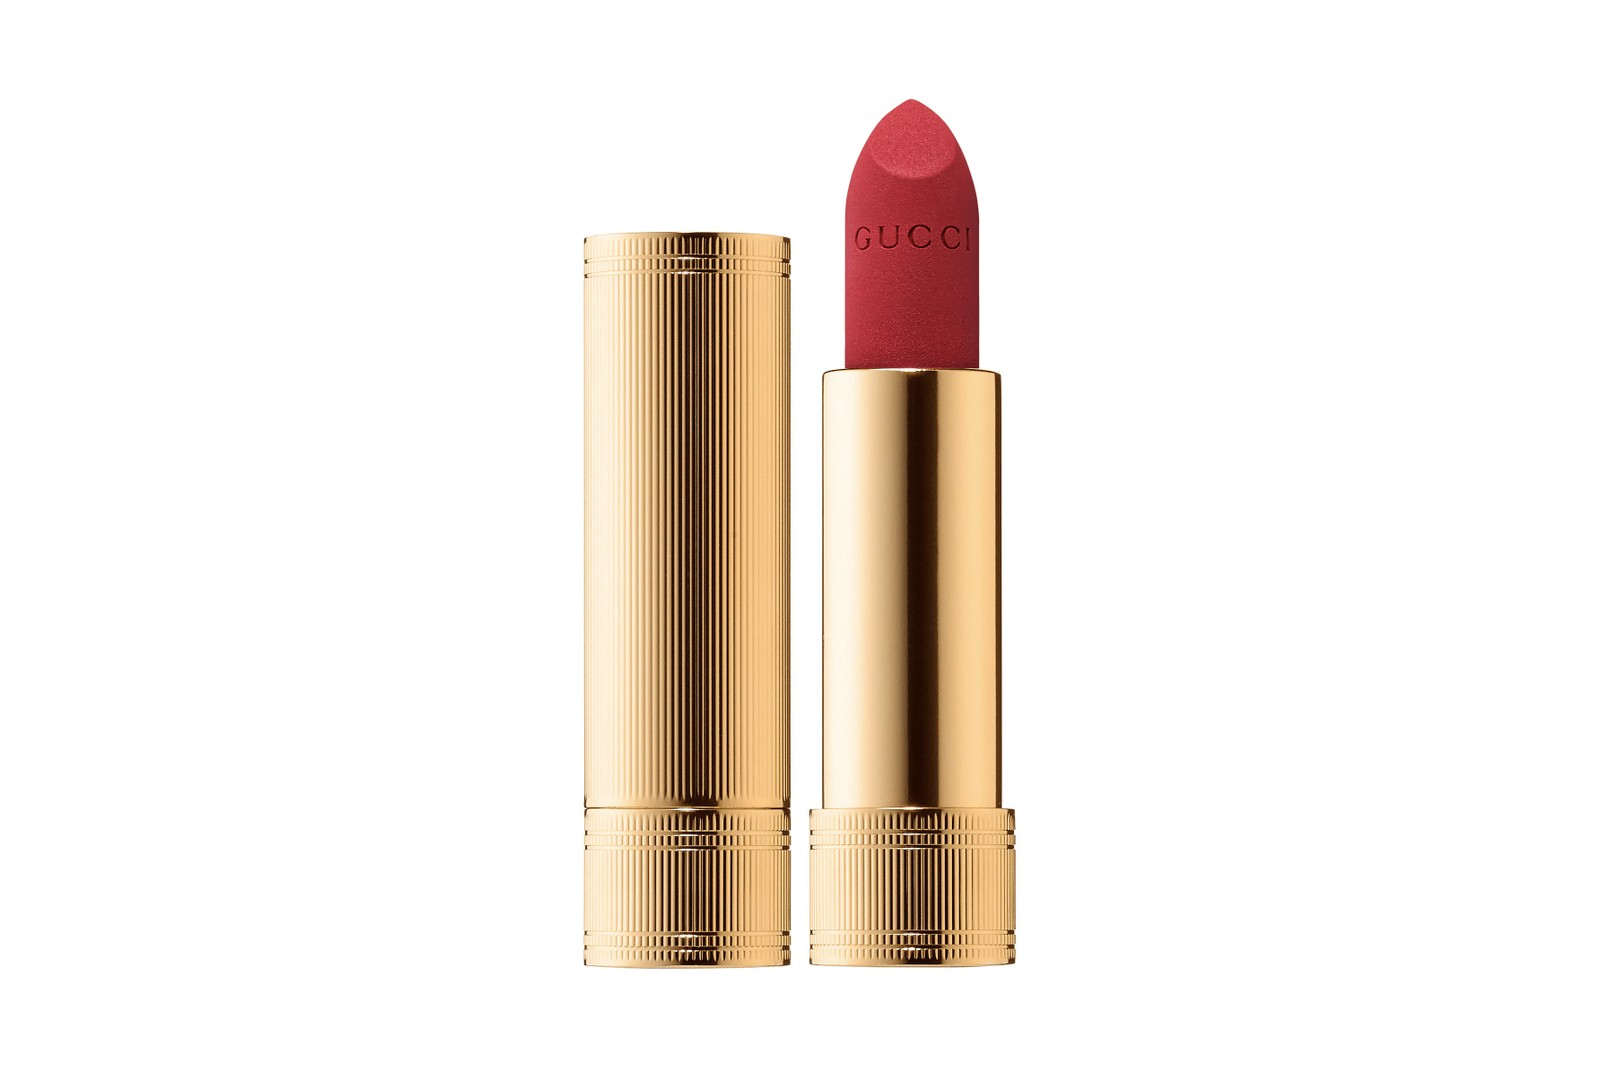 Best Red Lipsticks For New Year's Eve Makeup Mac Charlotte Tilbury Chanel